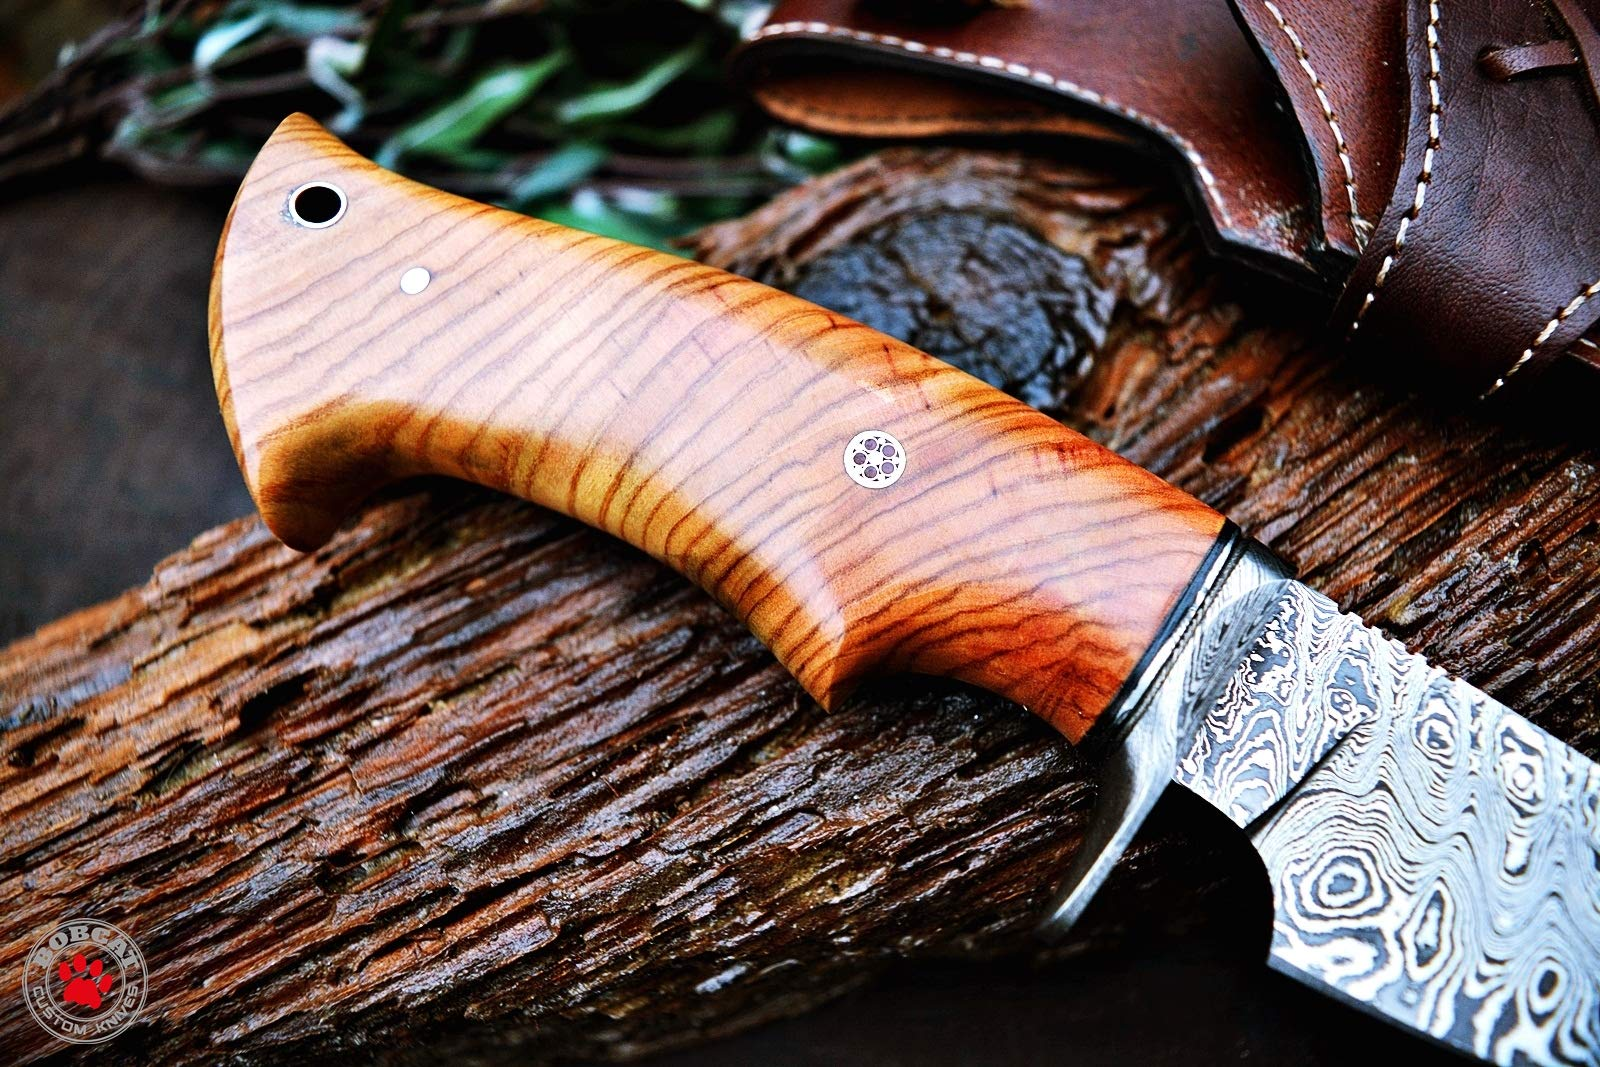 Custom Handmade Hunting Knife Bowie Knife Damascus Steel Survival Knife EDC 10'' Overall Olive Wood with Sheath by Bobcat Knives (Image #4)